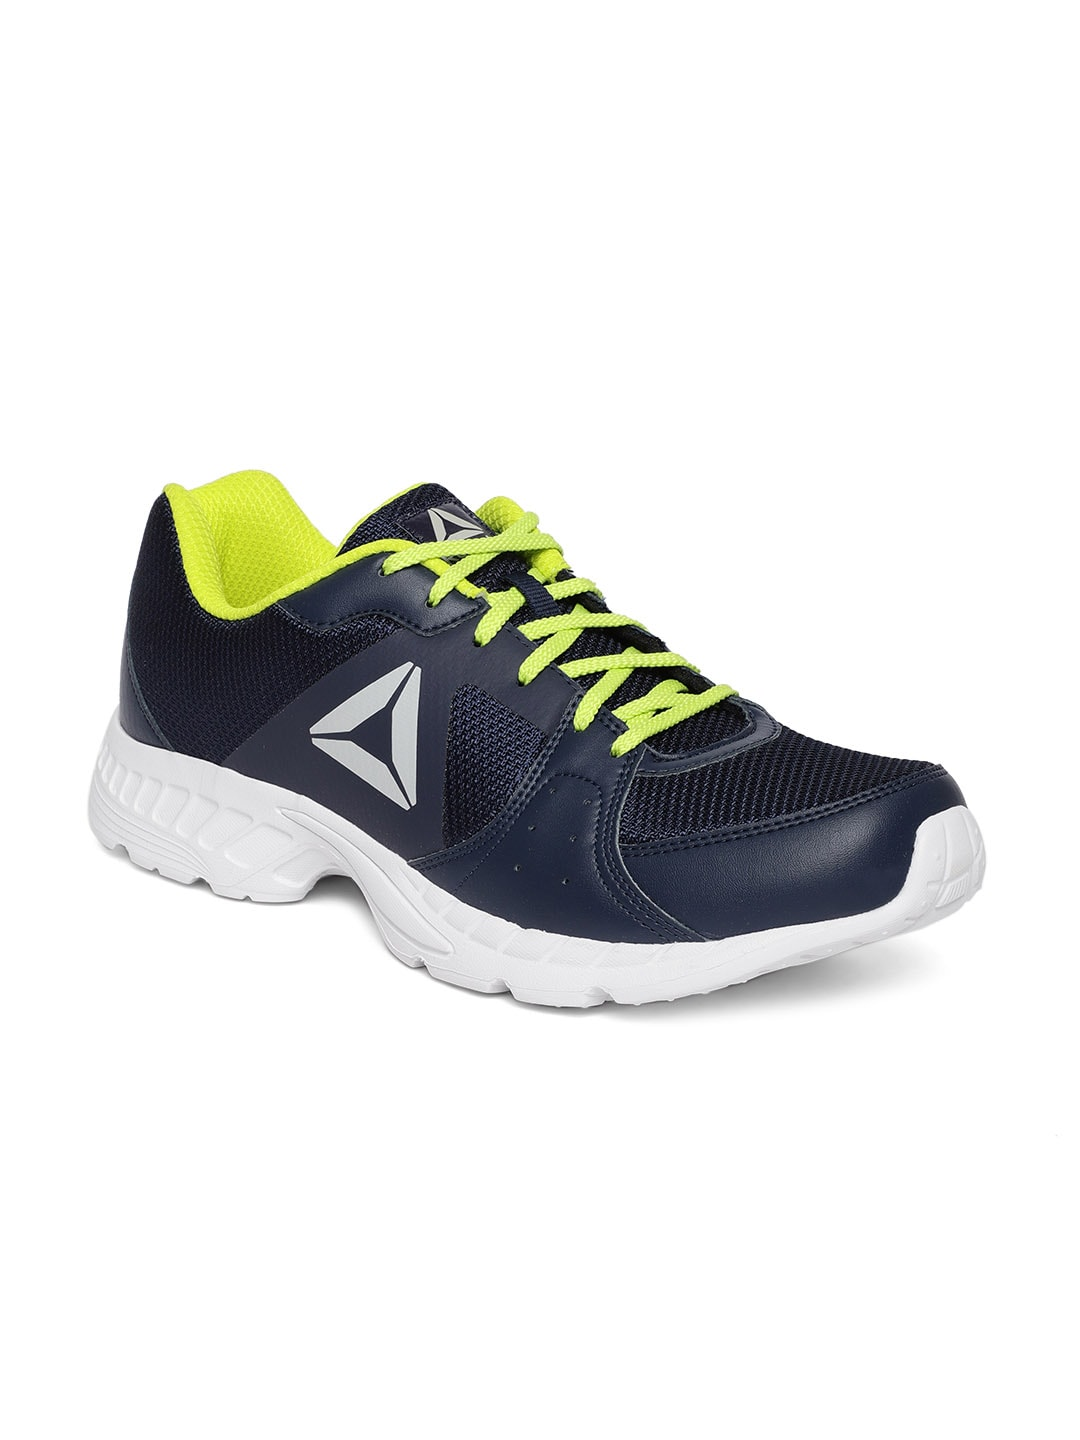 cfee506743a Reebok Sports Shoes Navy Blue Blue Black - Buy Reebok Sports Shoes Navy  Blue Blue Black online in India